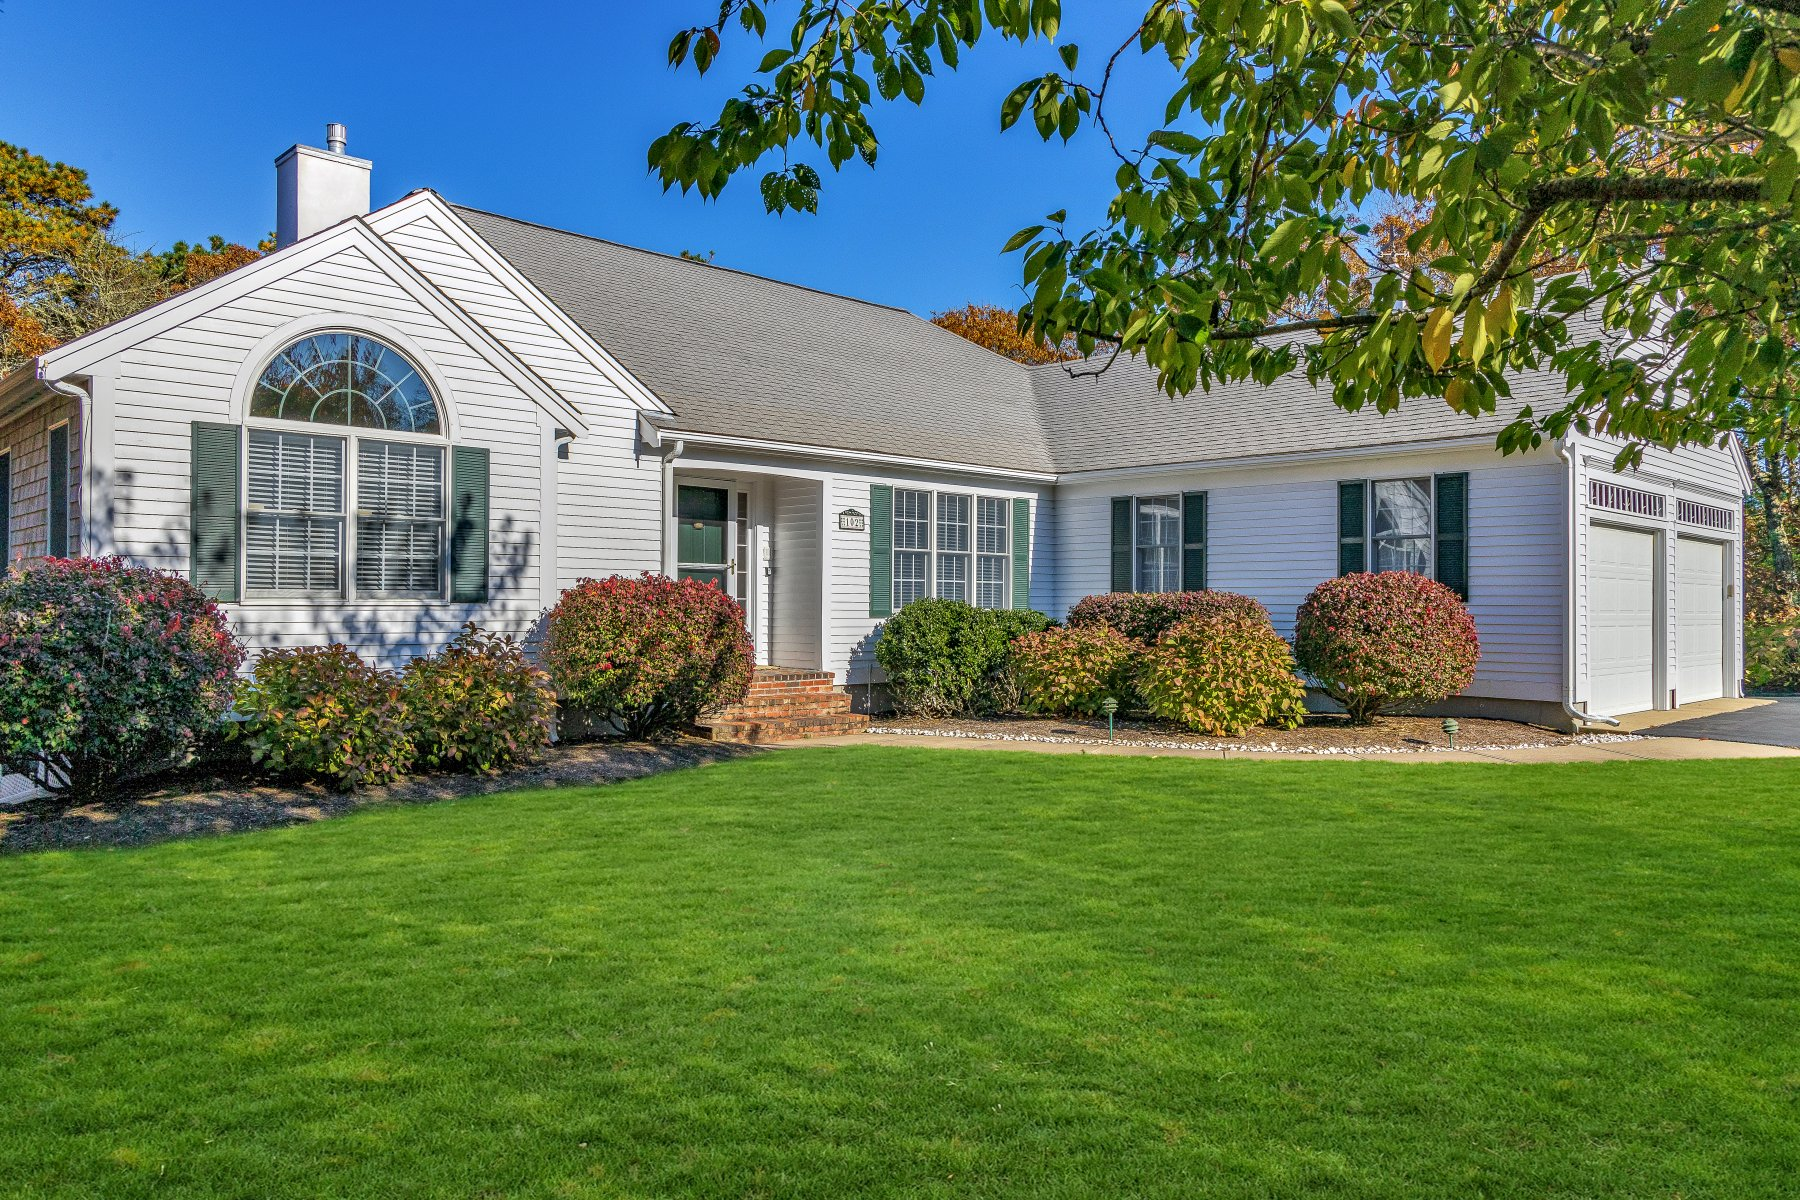 Single Family Homes for Sale at 102 Courtney Road, Harwich 102 Courtney Road Harwich, Massachusetts 02645 United States